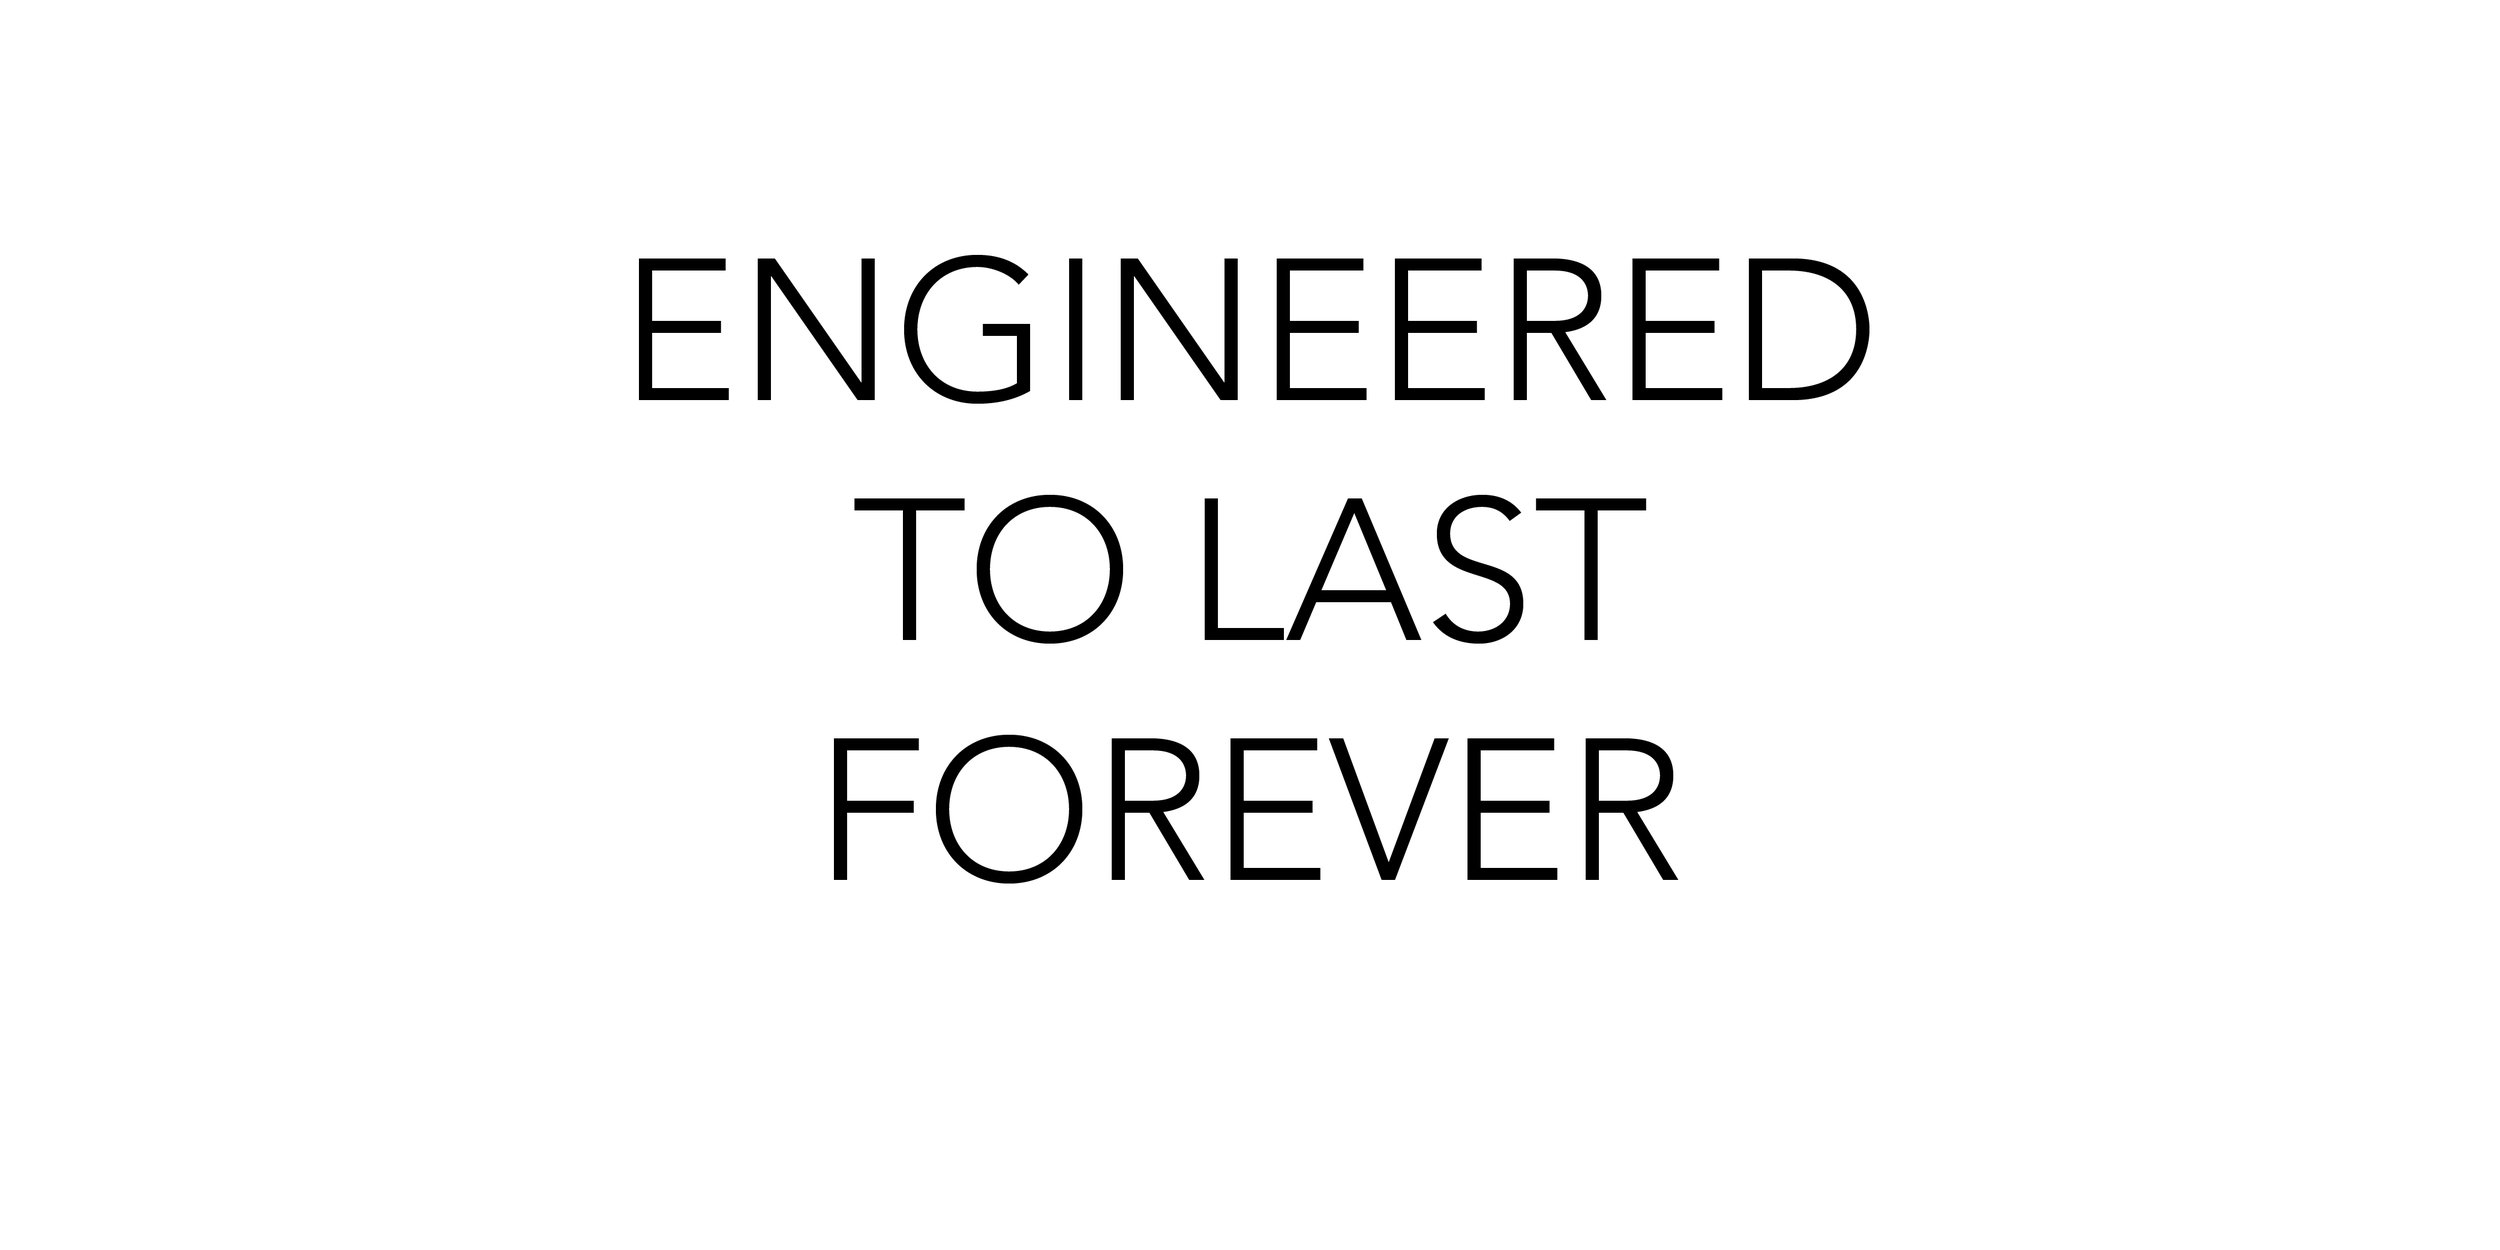 Engineered To Last Forever